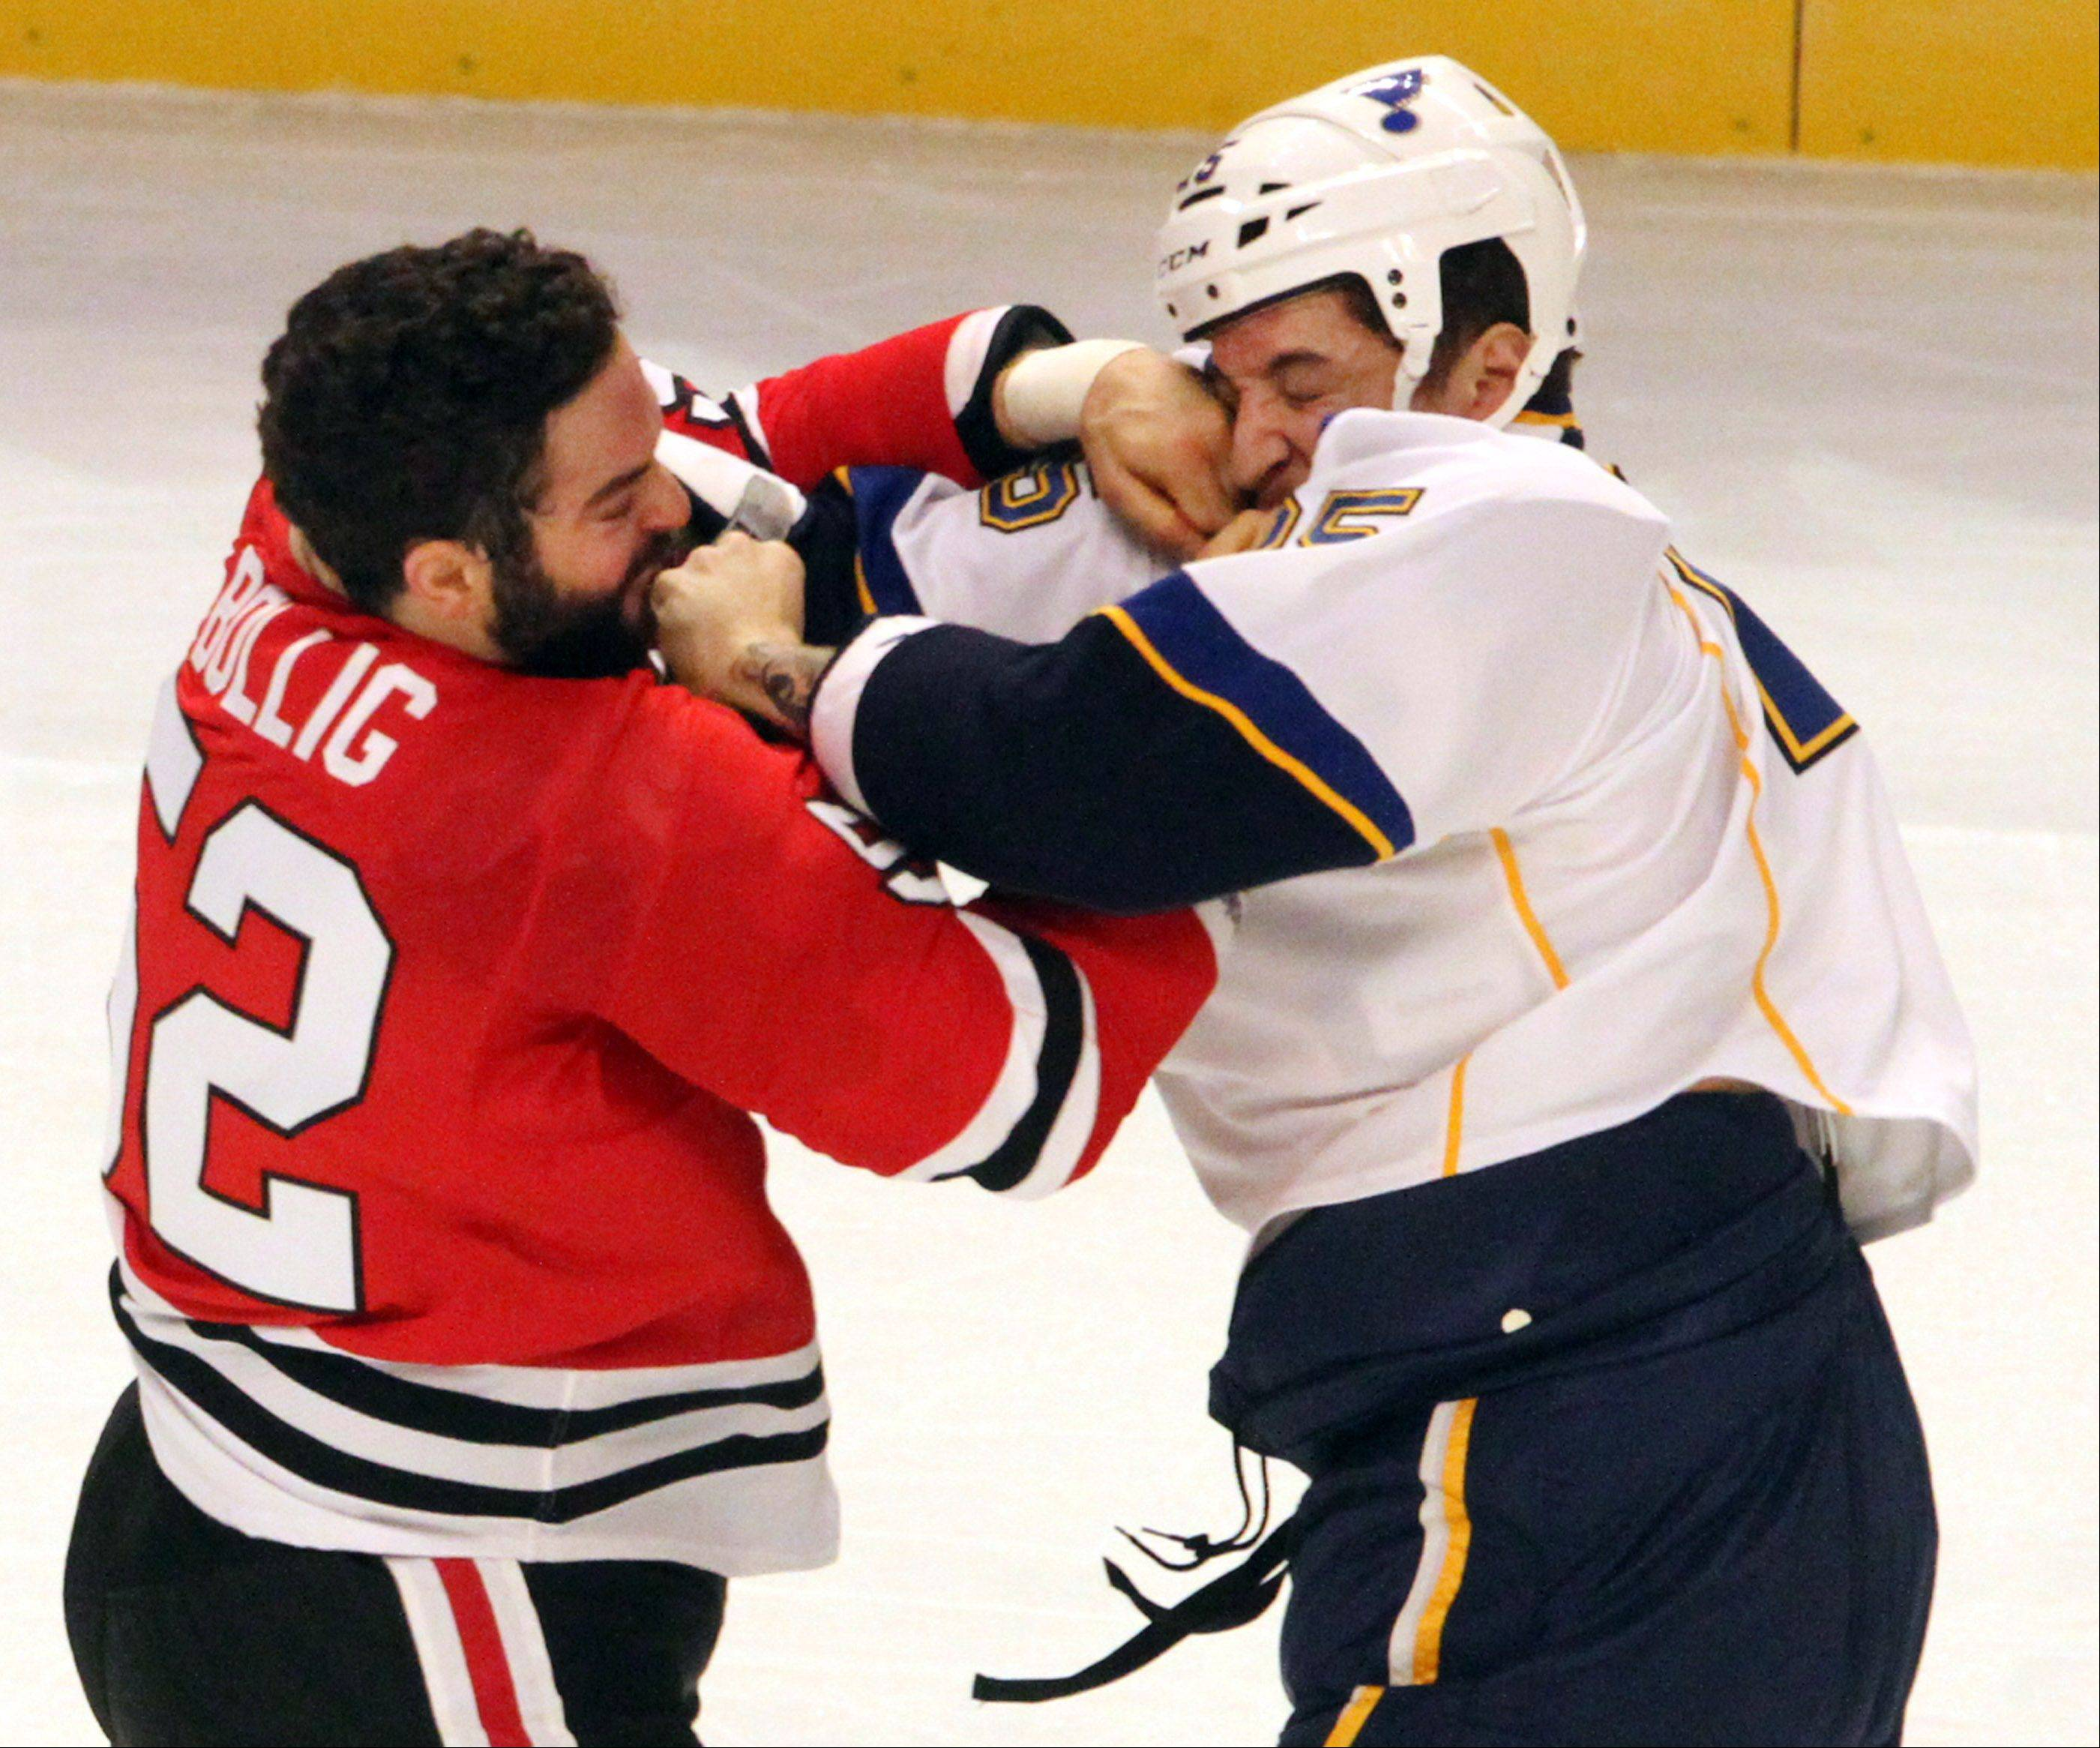 Bollig's not just a tough guy, he plays well-rounded role